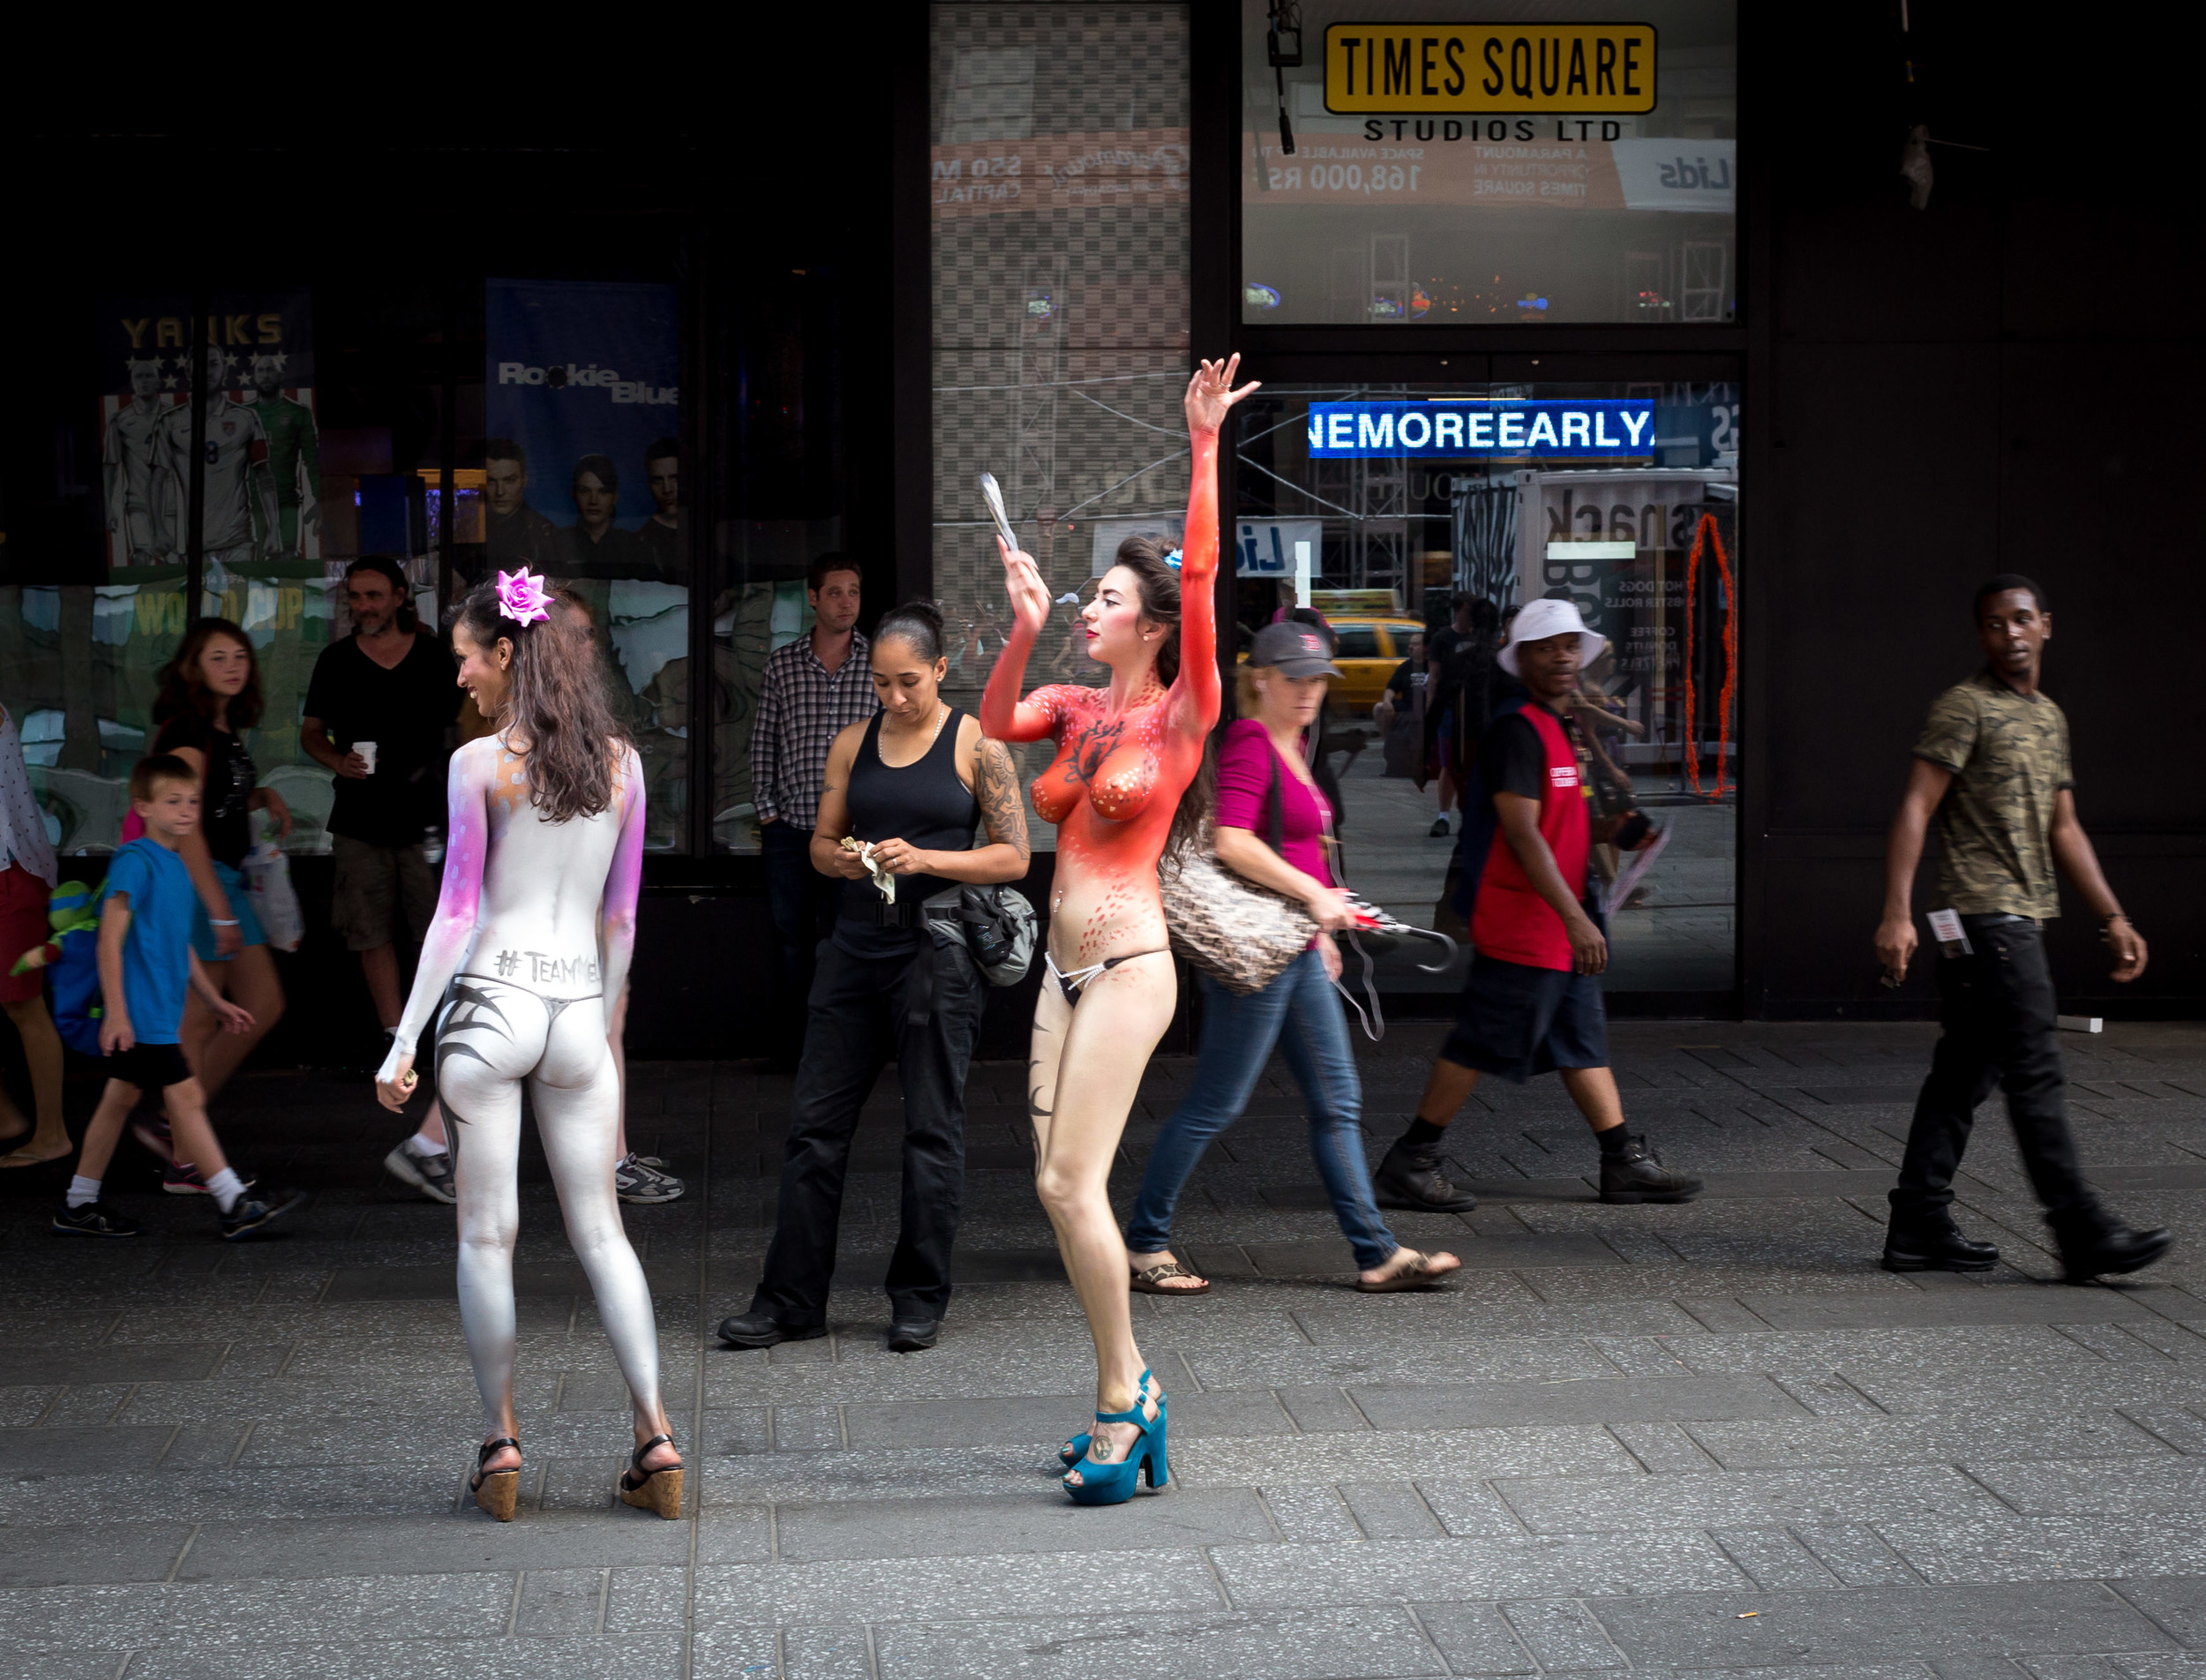 Times Square nudes.jpg